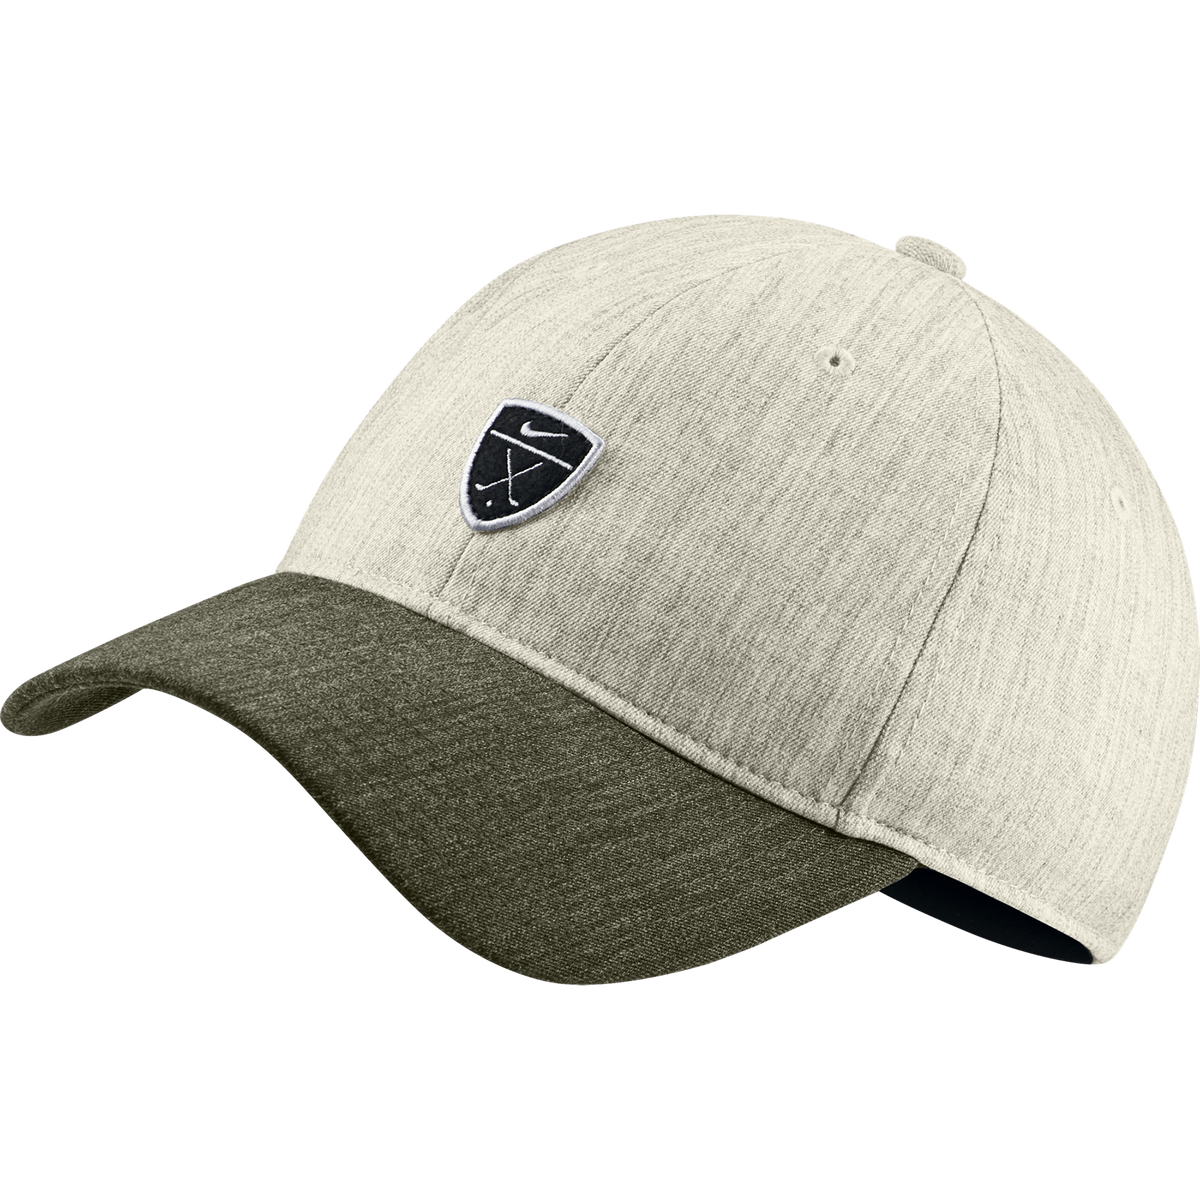 75ae53fbb9a63 Images. Nike Heritage86 Golf Hat